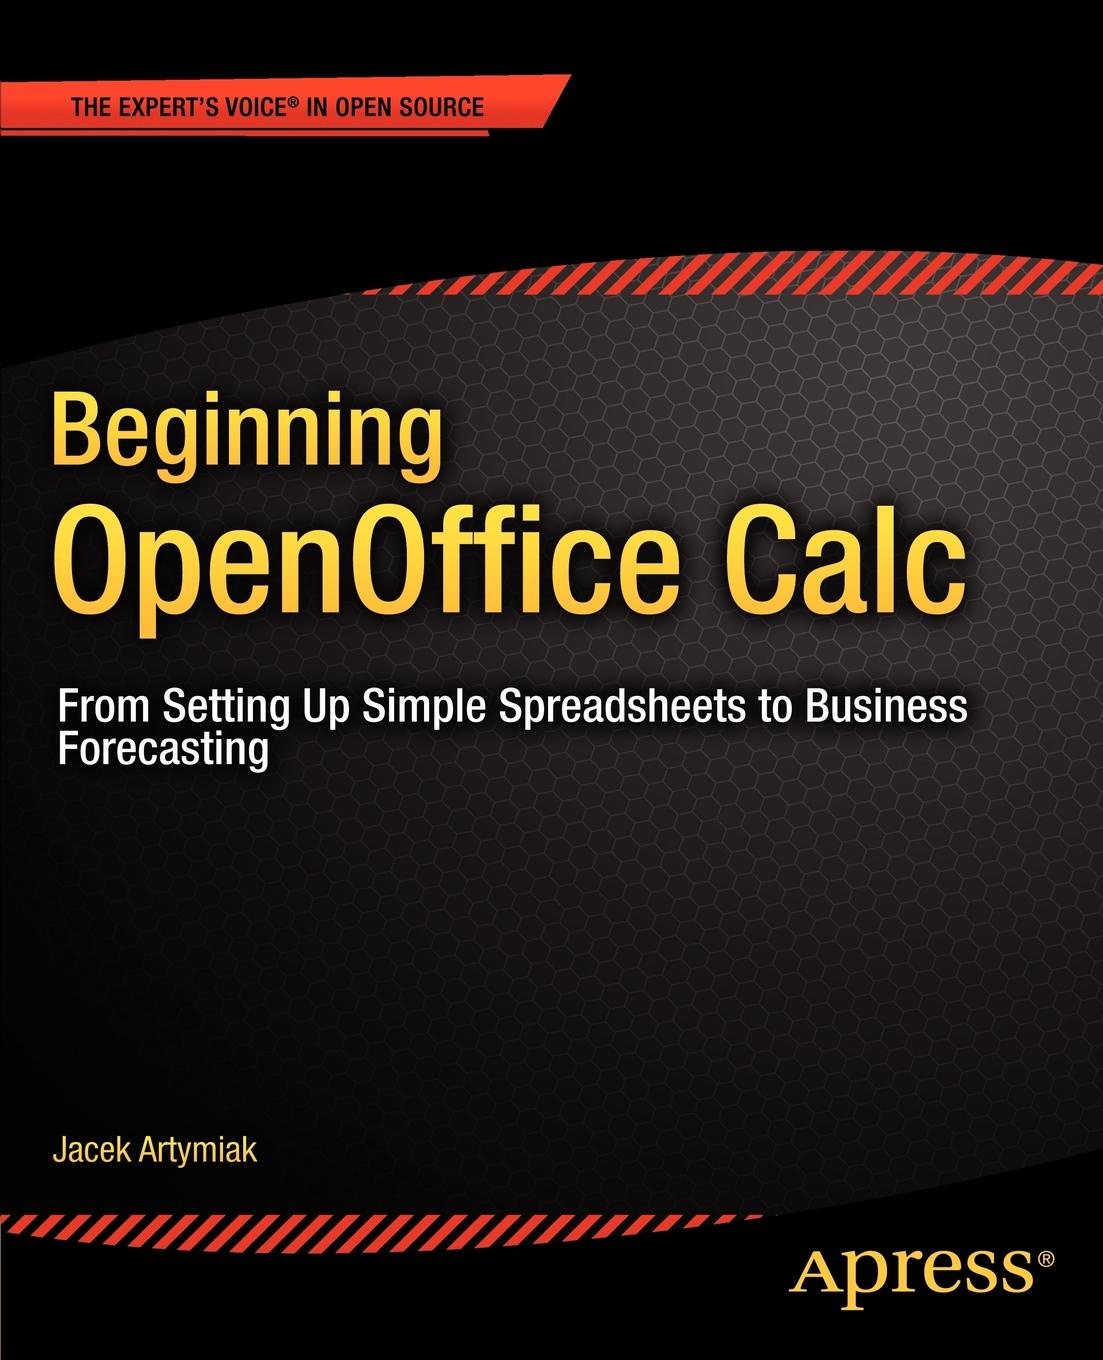 Jacek Artymiak Beginning Openoffice Calc. From Setting Up Simple Spreadsheets to Business Forecasting